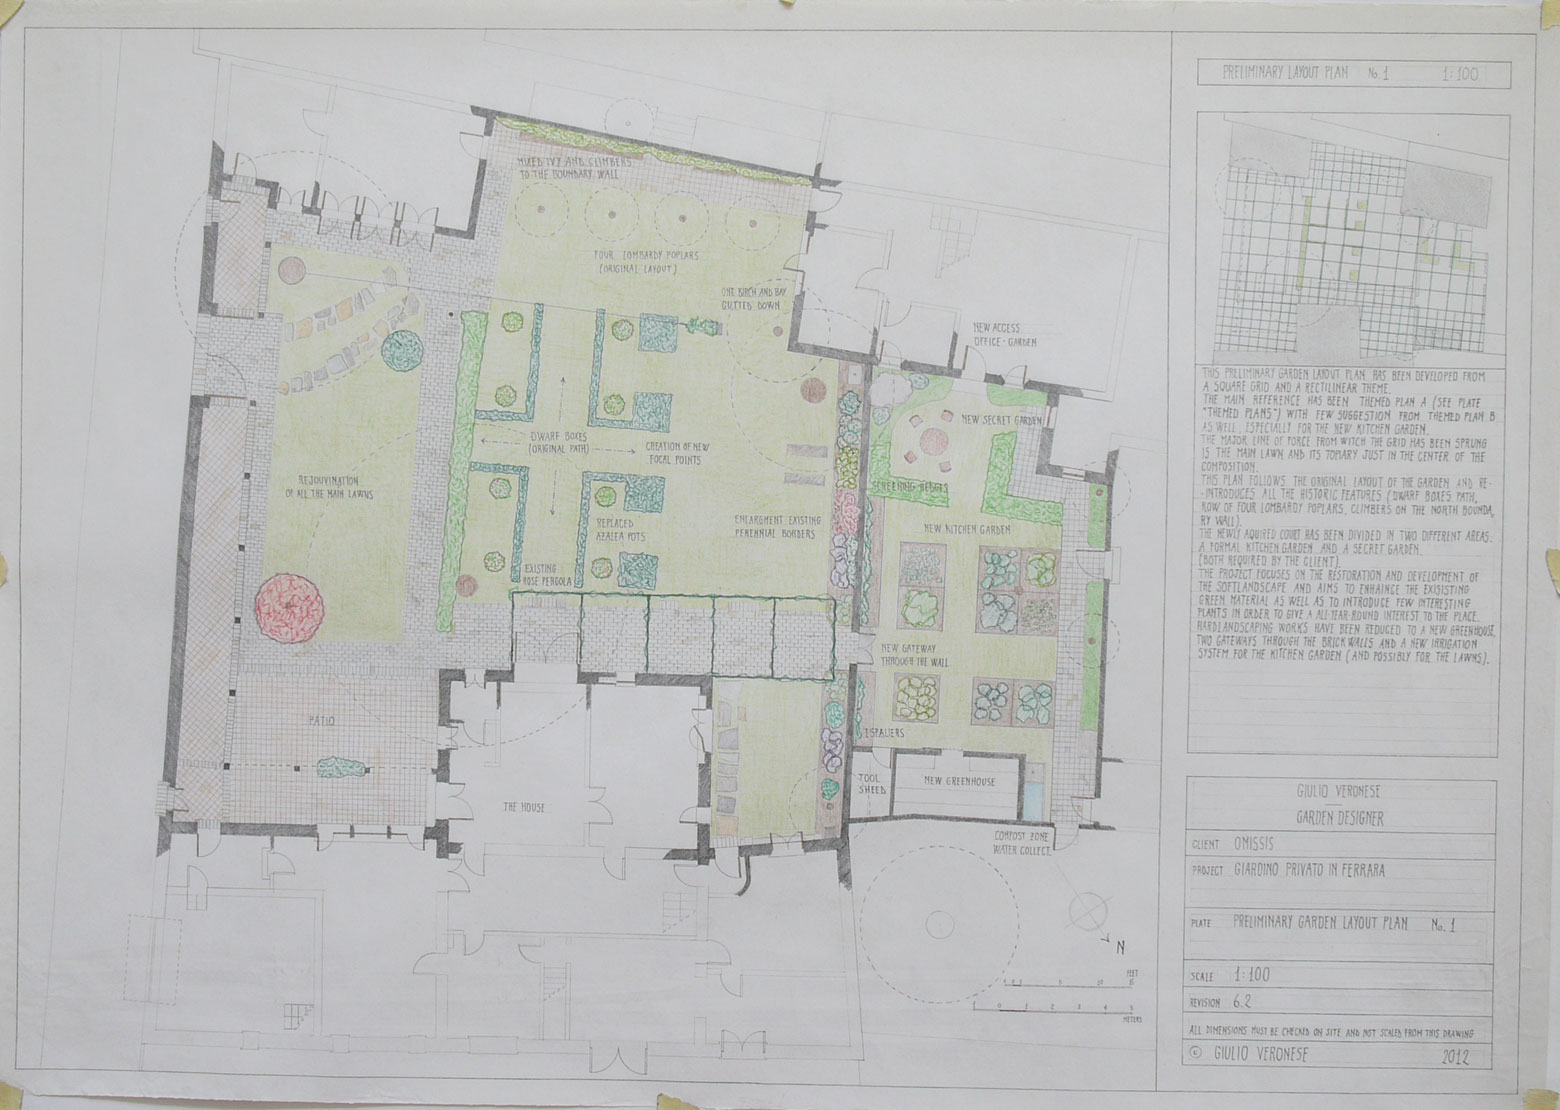 Plate 6 - Preliminary layout plan no.1